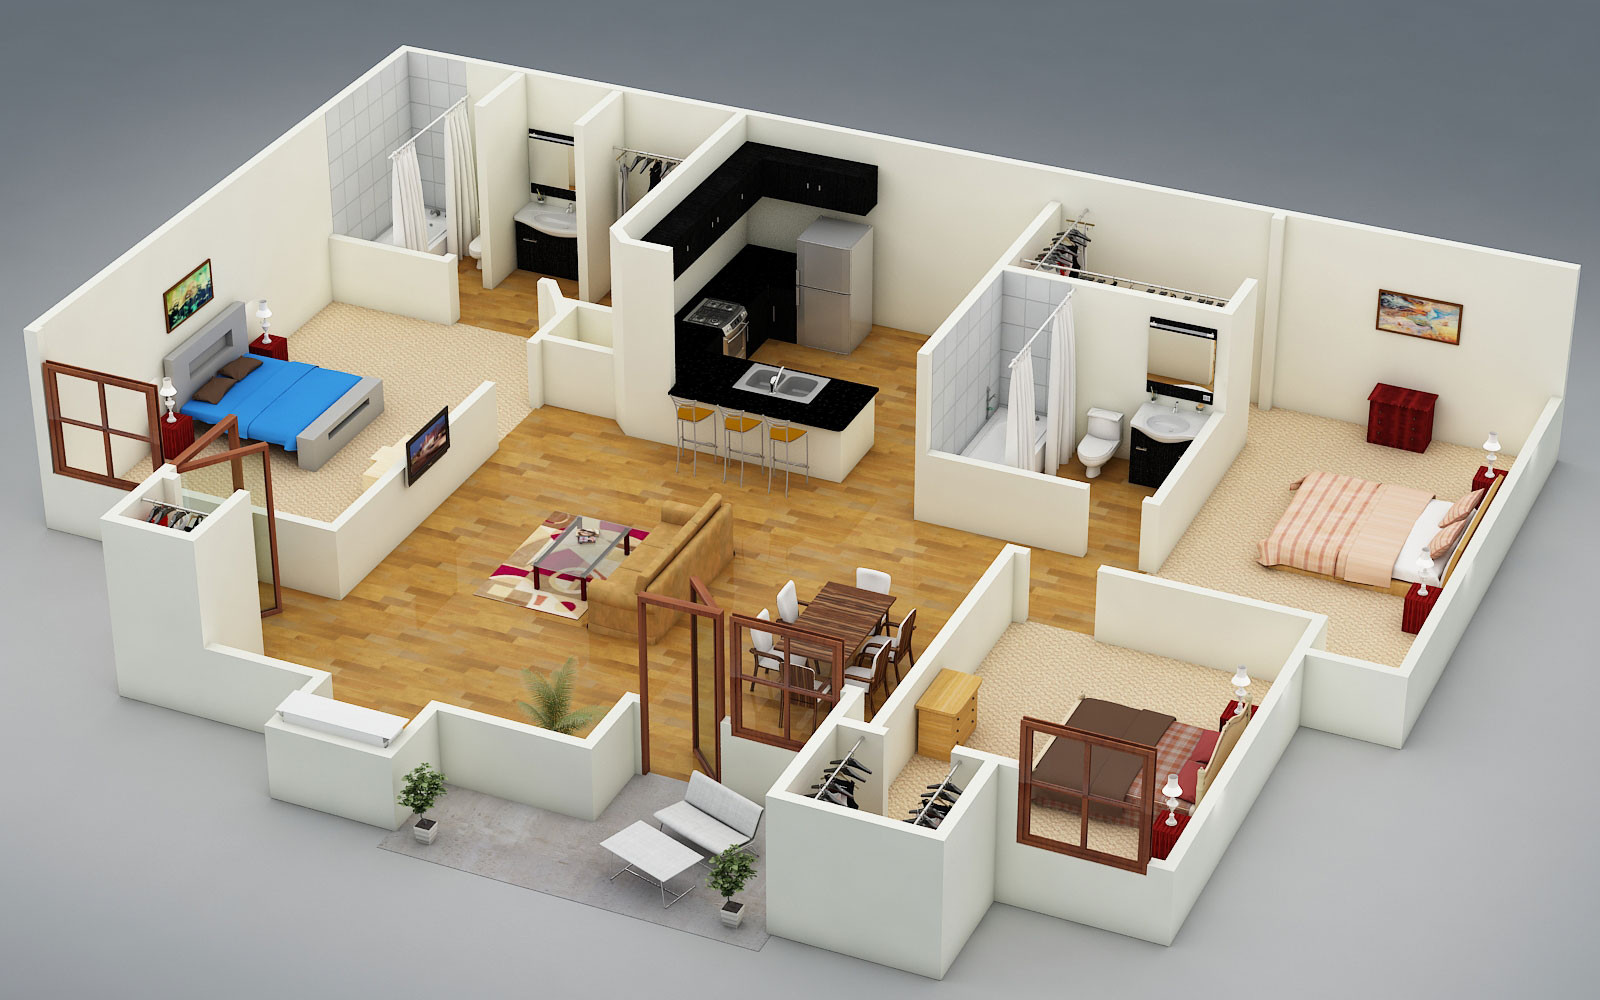 Best ideas about 3 Bedroom House . Save or Pin 3 bedroom houses for rent private landlord House For Now.